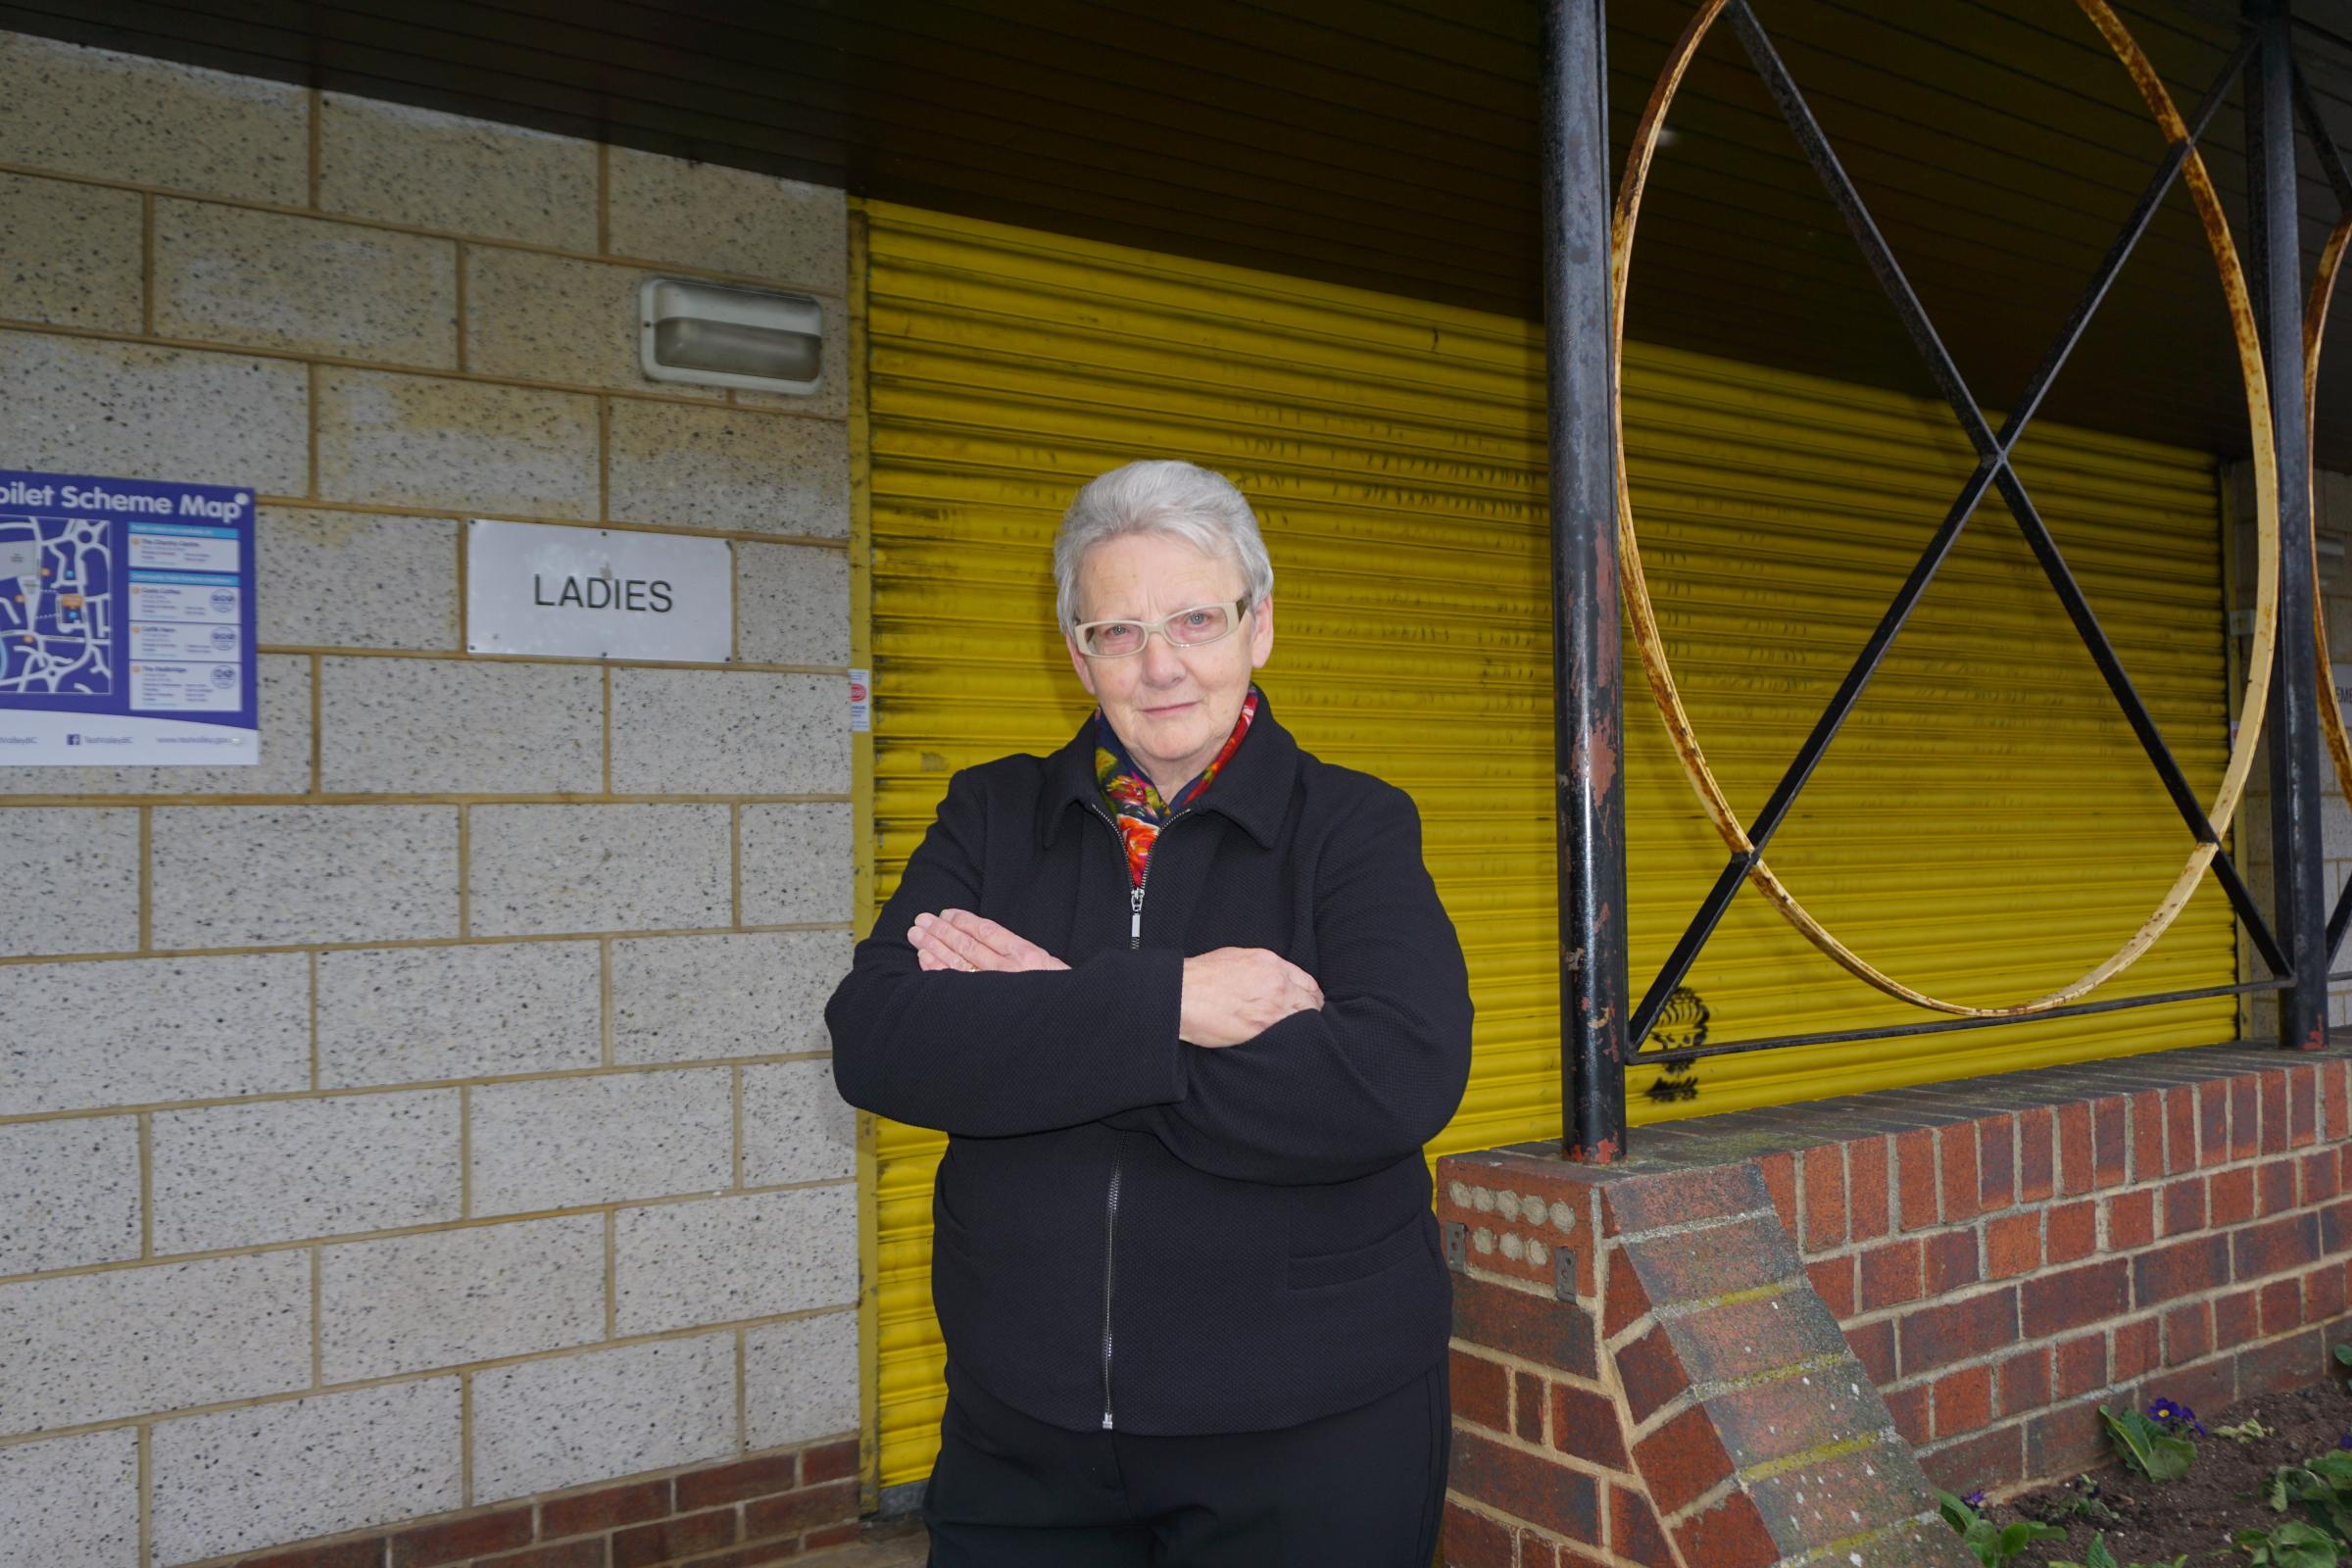 Councillor Iris Andersen will be voting against the demolition of the George Yard toilets